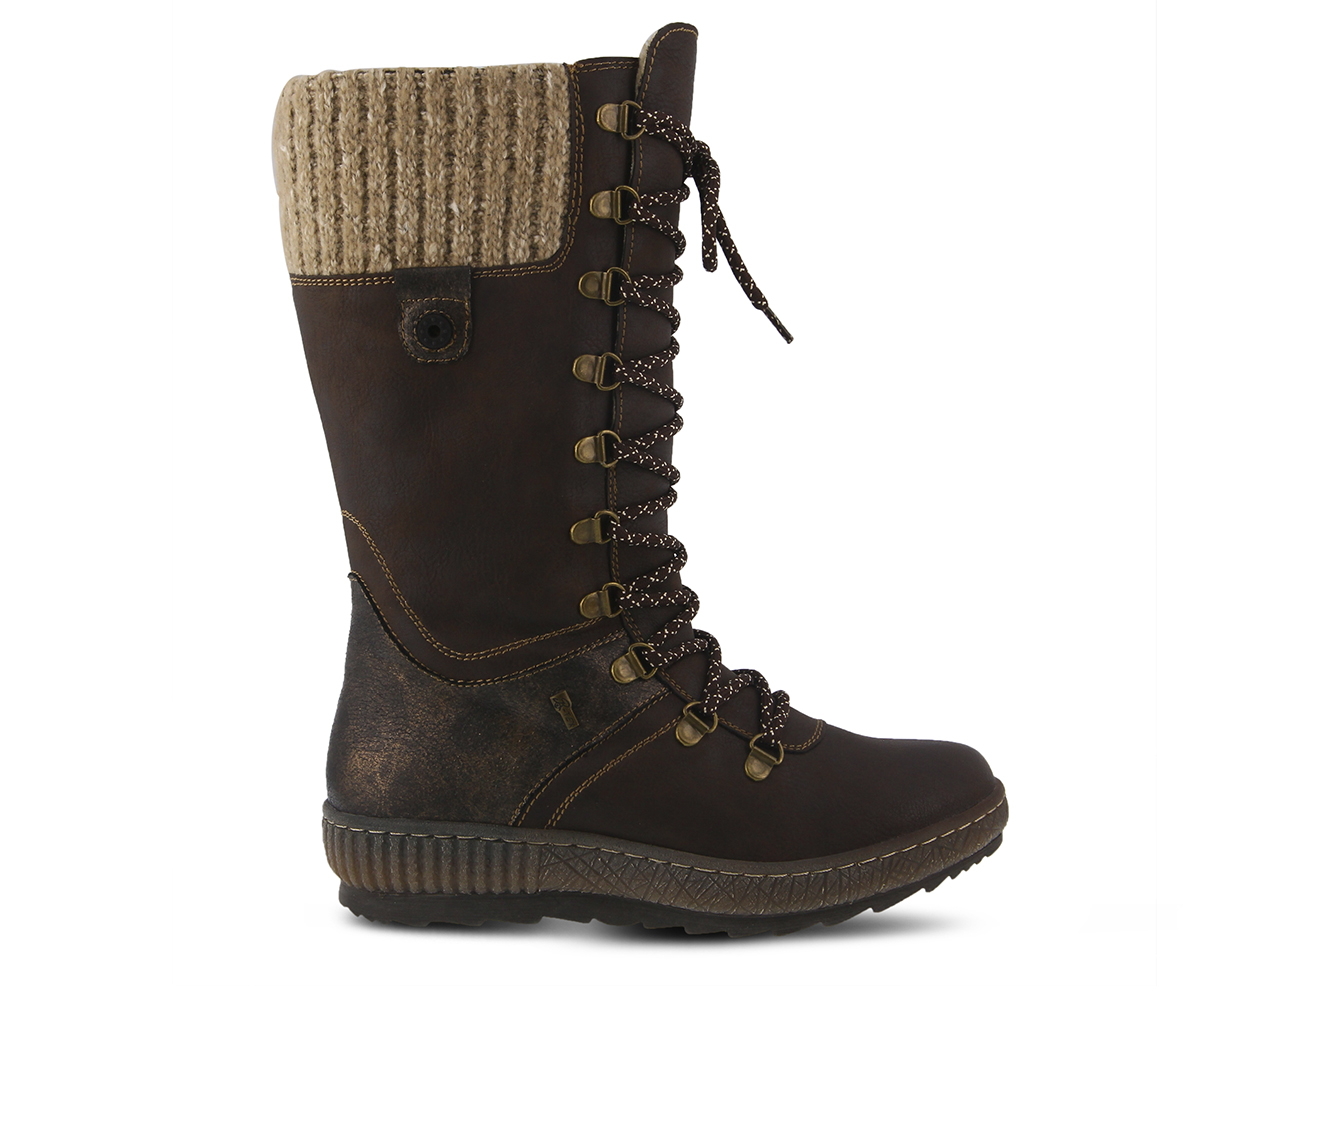 SPRING STEP Chibero Women's Boots (Brown Faux Leather)